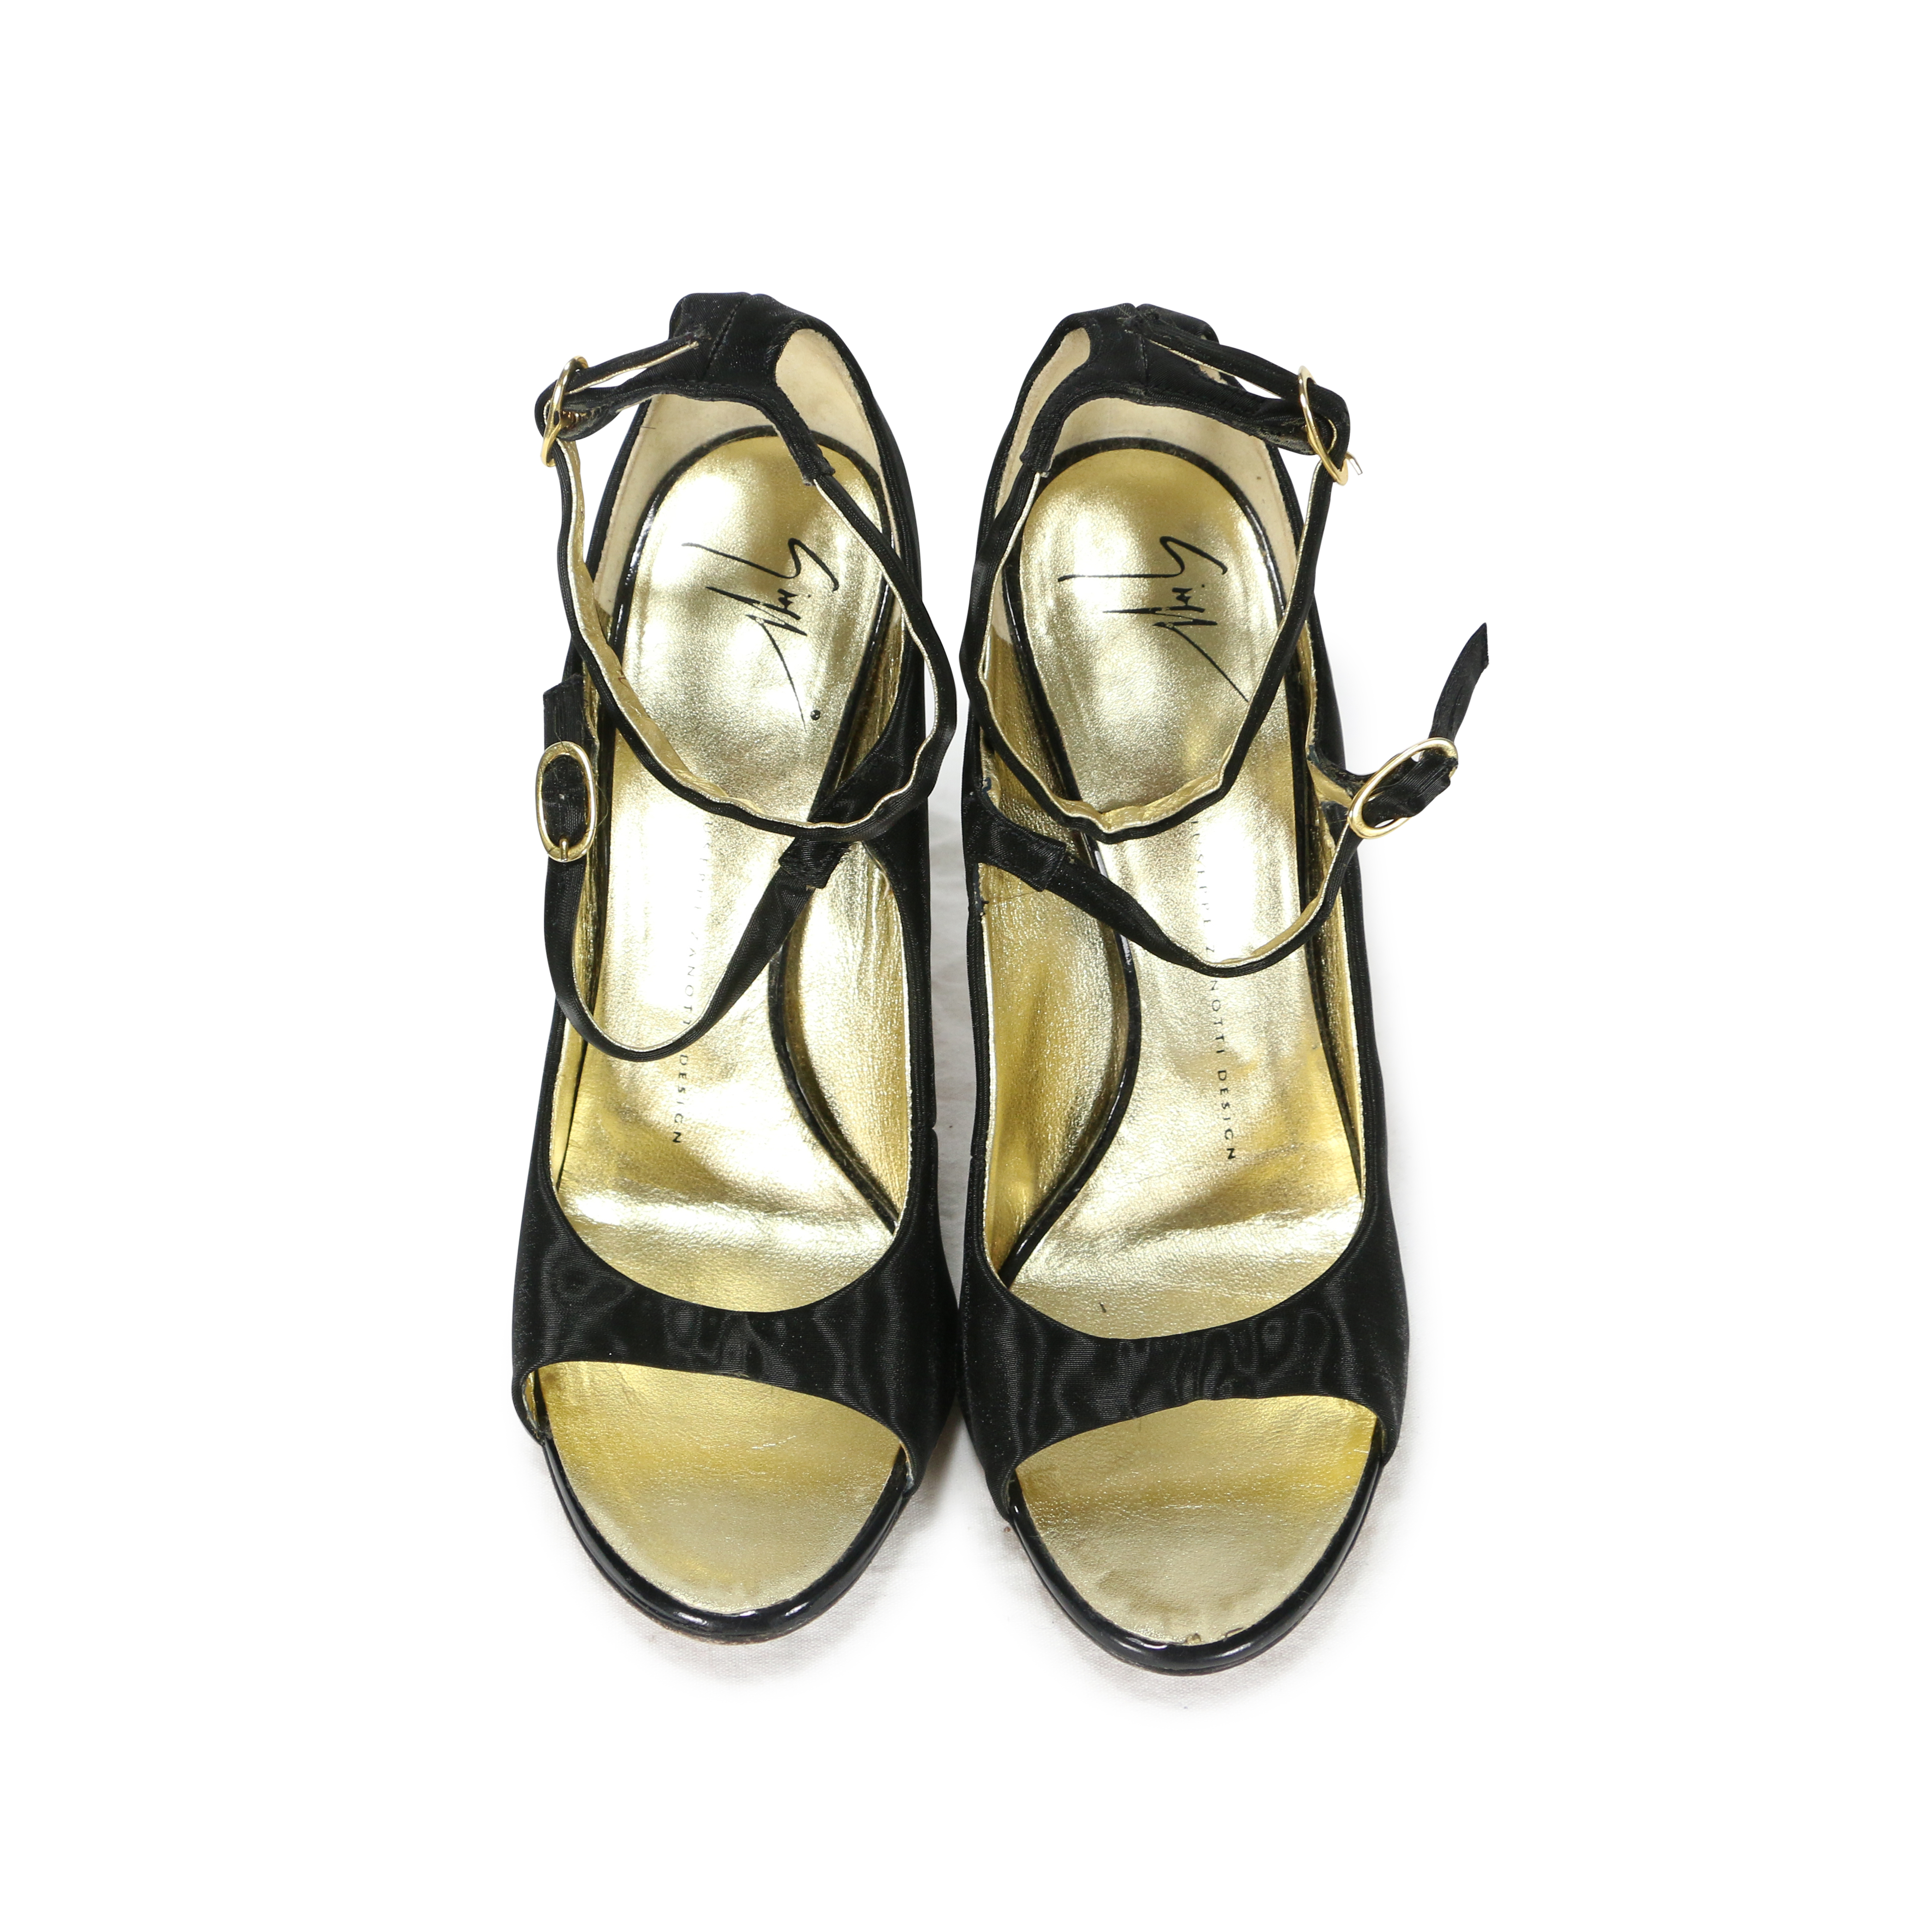 560d74c43b40b Authentic Second Hand Giuseppe Zanotti Wrapped Leaf Gold Heel Peep Toes  (PSS-200-00256) - THE FIFTH COLLECTION